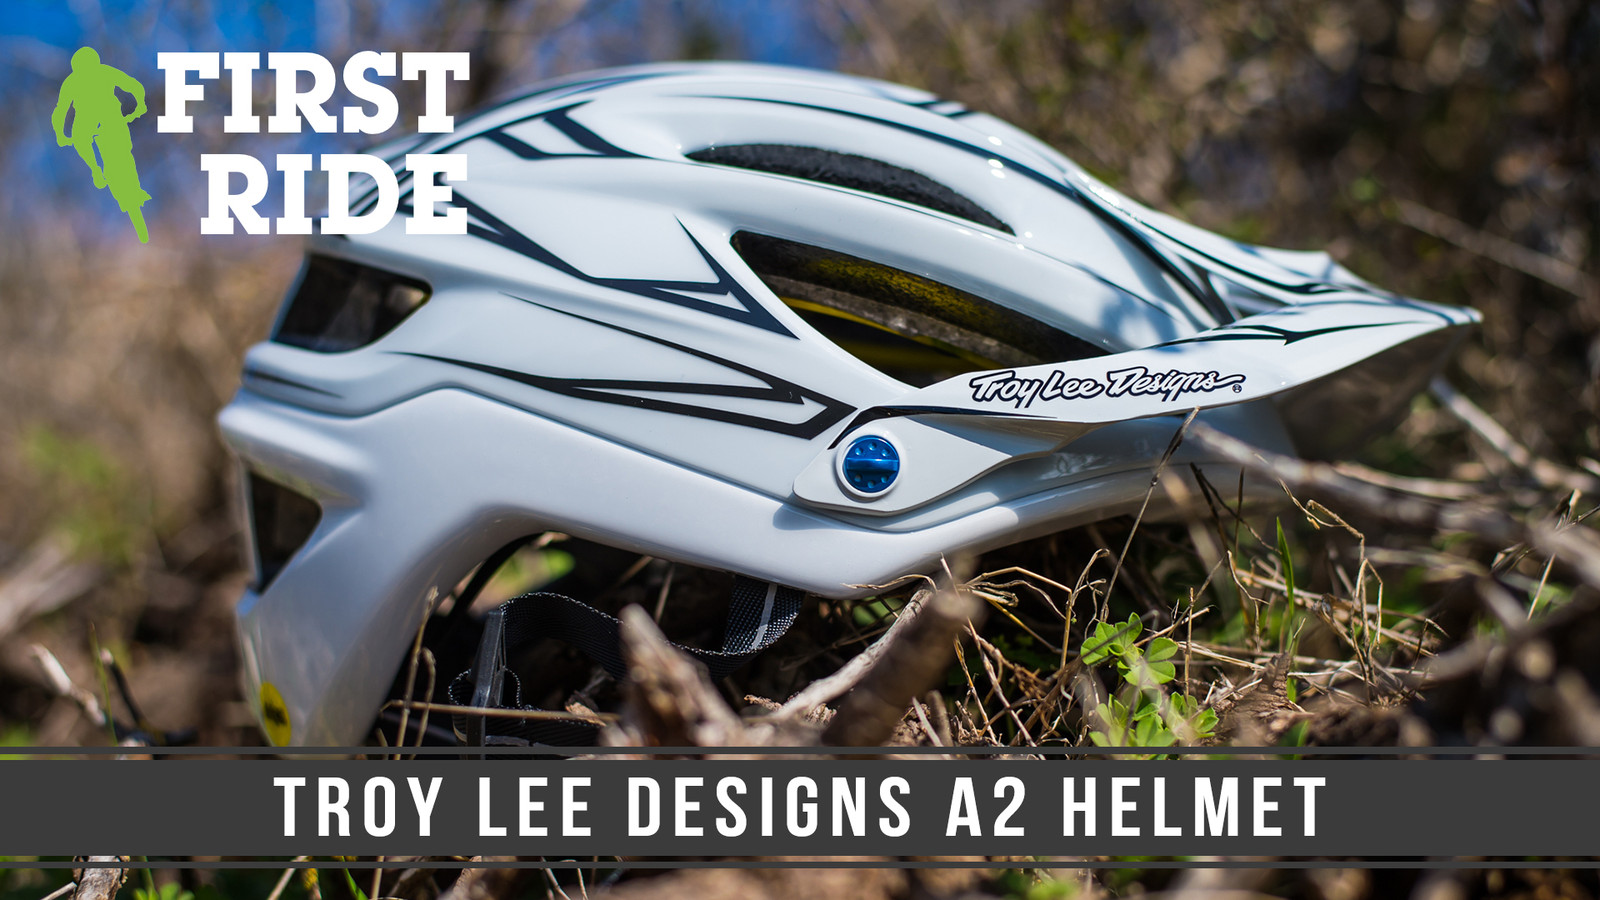 First Ride: Troy Lee Designs A2 Helmet